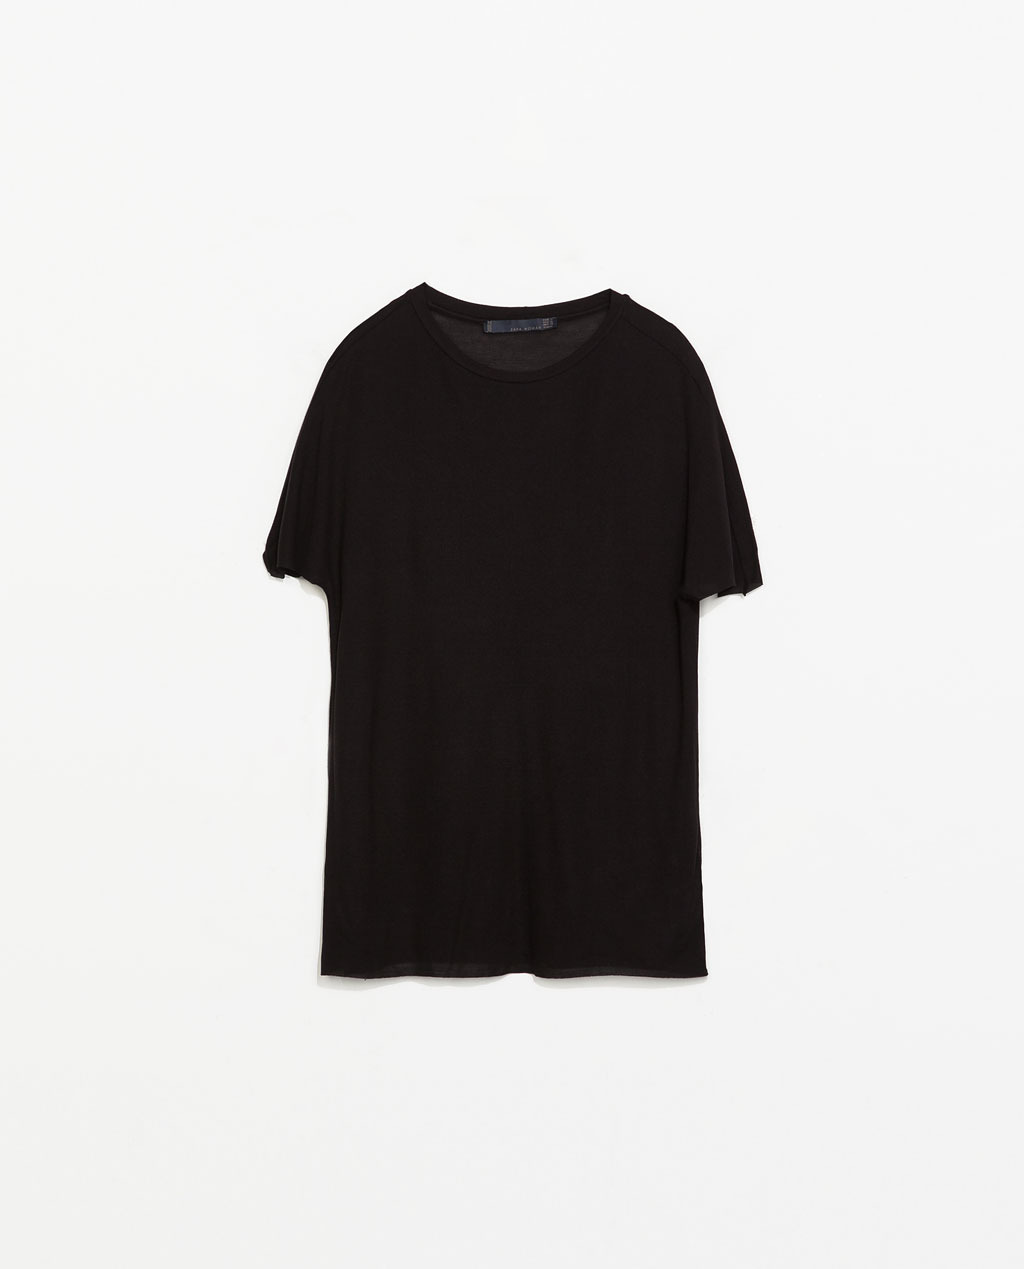 Pique Studio T Shirt - neckline: round neck; pattern: plain; style: t-shirt; predominant colour: black; occasions: casual, creative work; length: standard; fibres: silk - mix; fit: loose; sleeve length: short sleeve; sleeve style: standard; texture group: silky - light; pattern type: fabric; season: s/s 2014